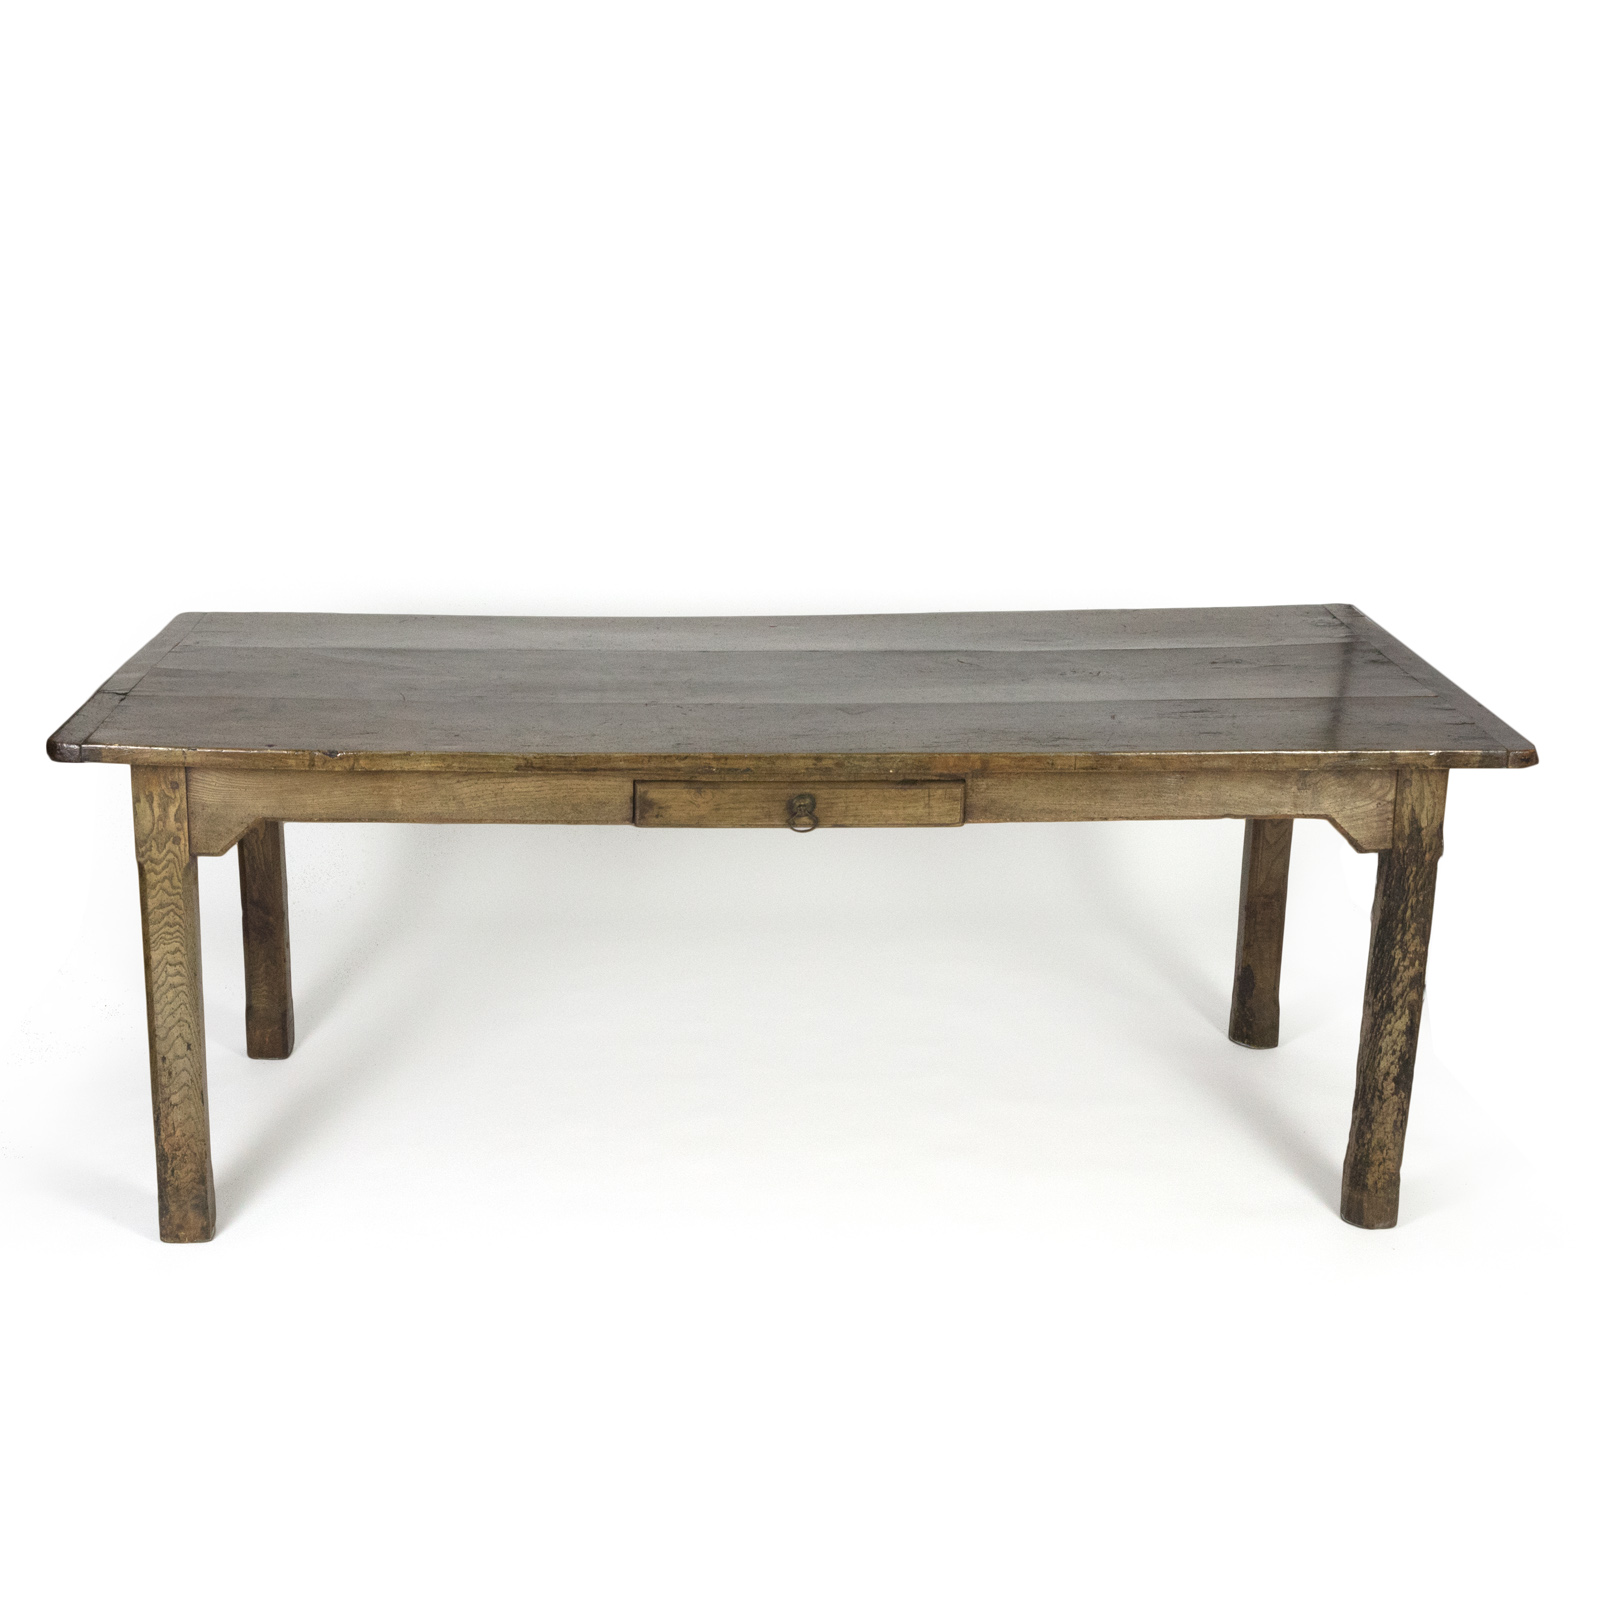 Garden Court Antiques San Francisco Large English Fruitwood Farm Table With Single Side Drawer